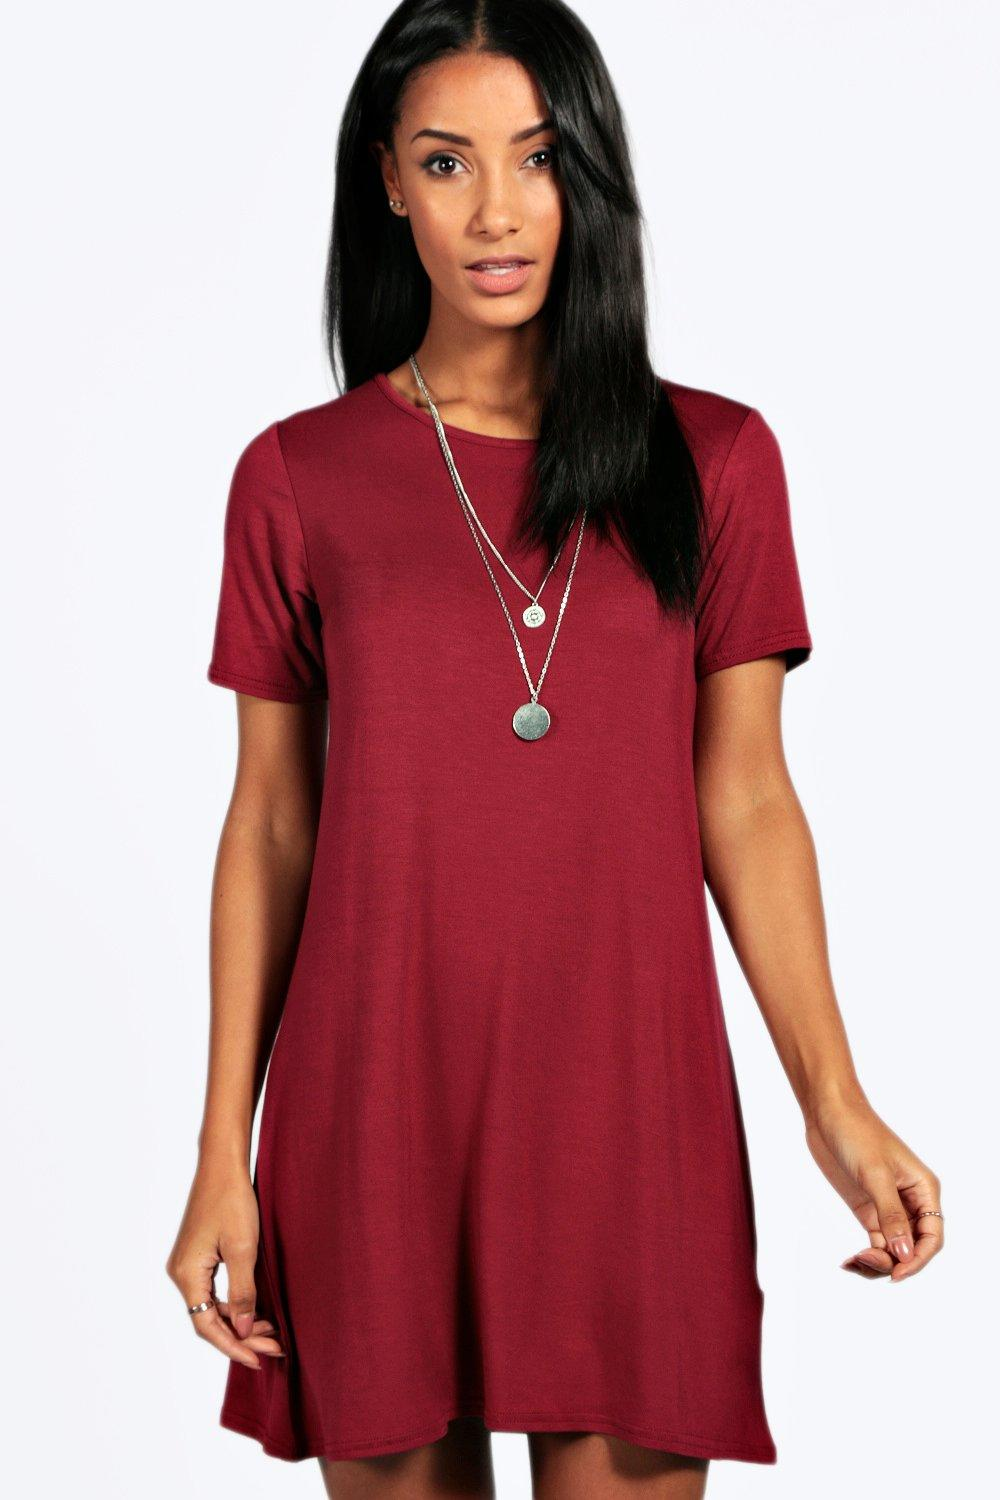 Shift Deals: 50 to 90% off deals on Groupon Goods. Women's Chiffon Lace Embellished Hem A-line Shift Dress. Women's Floral T-Shirt Dress with Side Pockets. Plus Sizes Available.